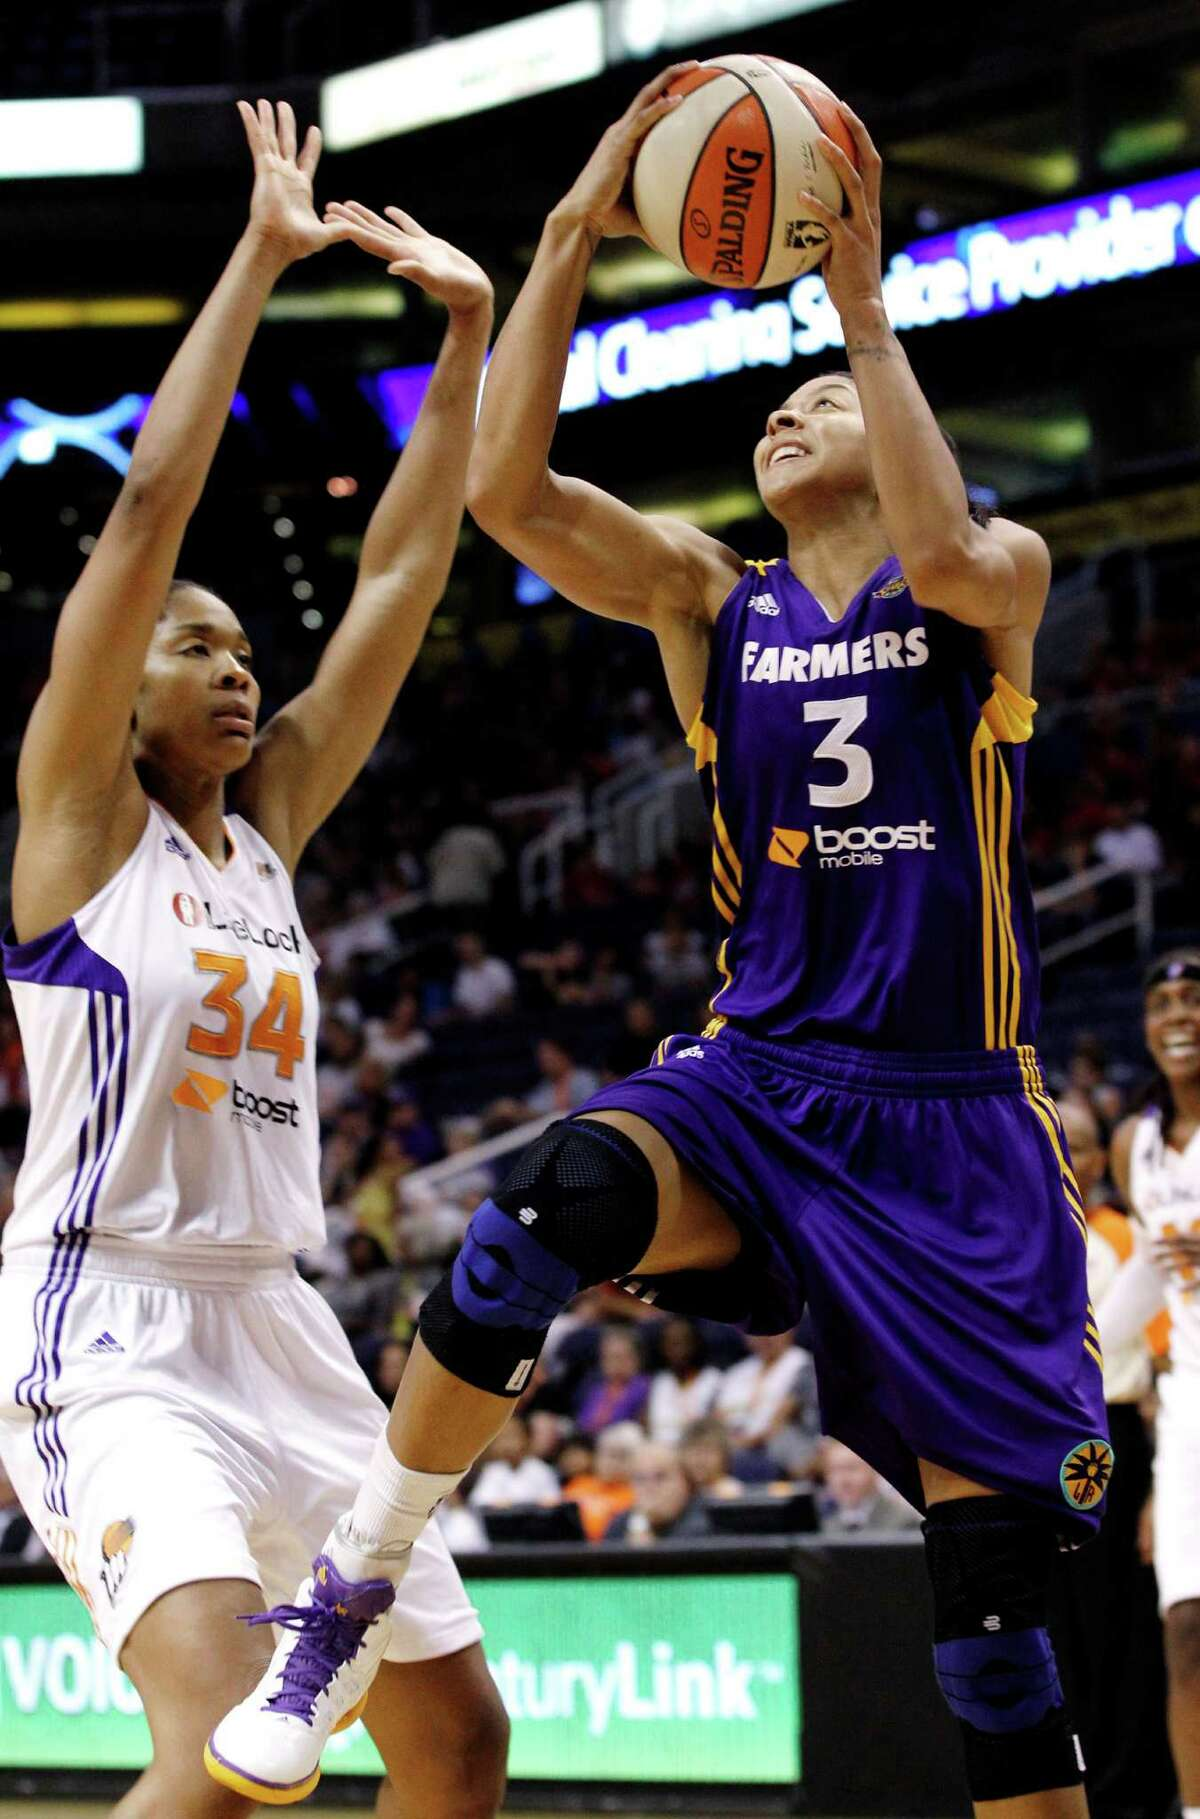 Candace Parker (right) netted 22 points and 14 rebounds as the Sparks beat the Mercruy and moved a game ahead of the Silvers Stars for second place in the Western Conference.